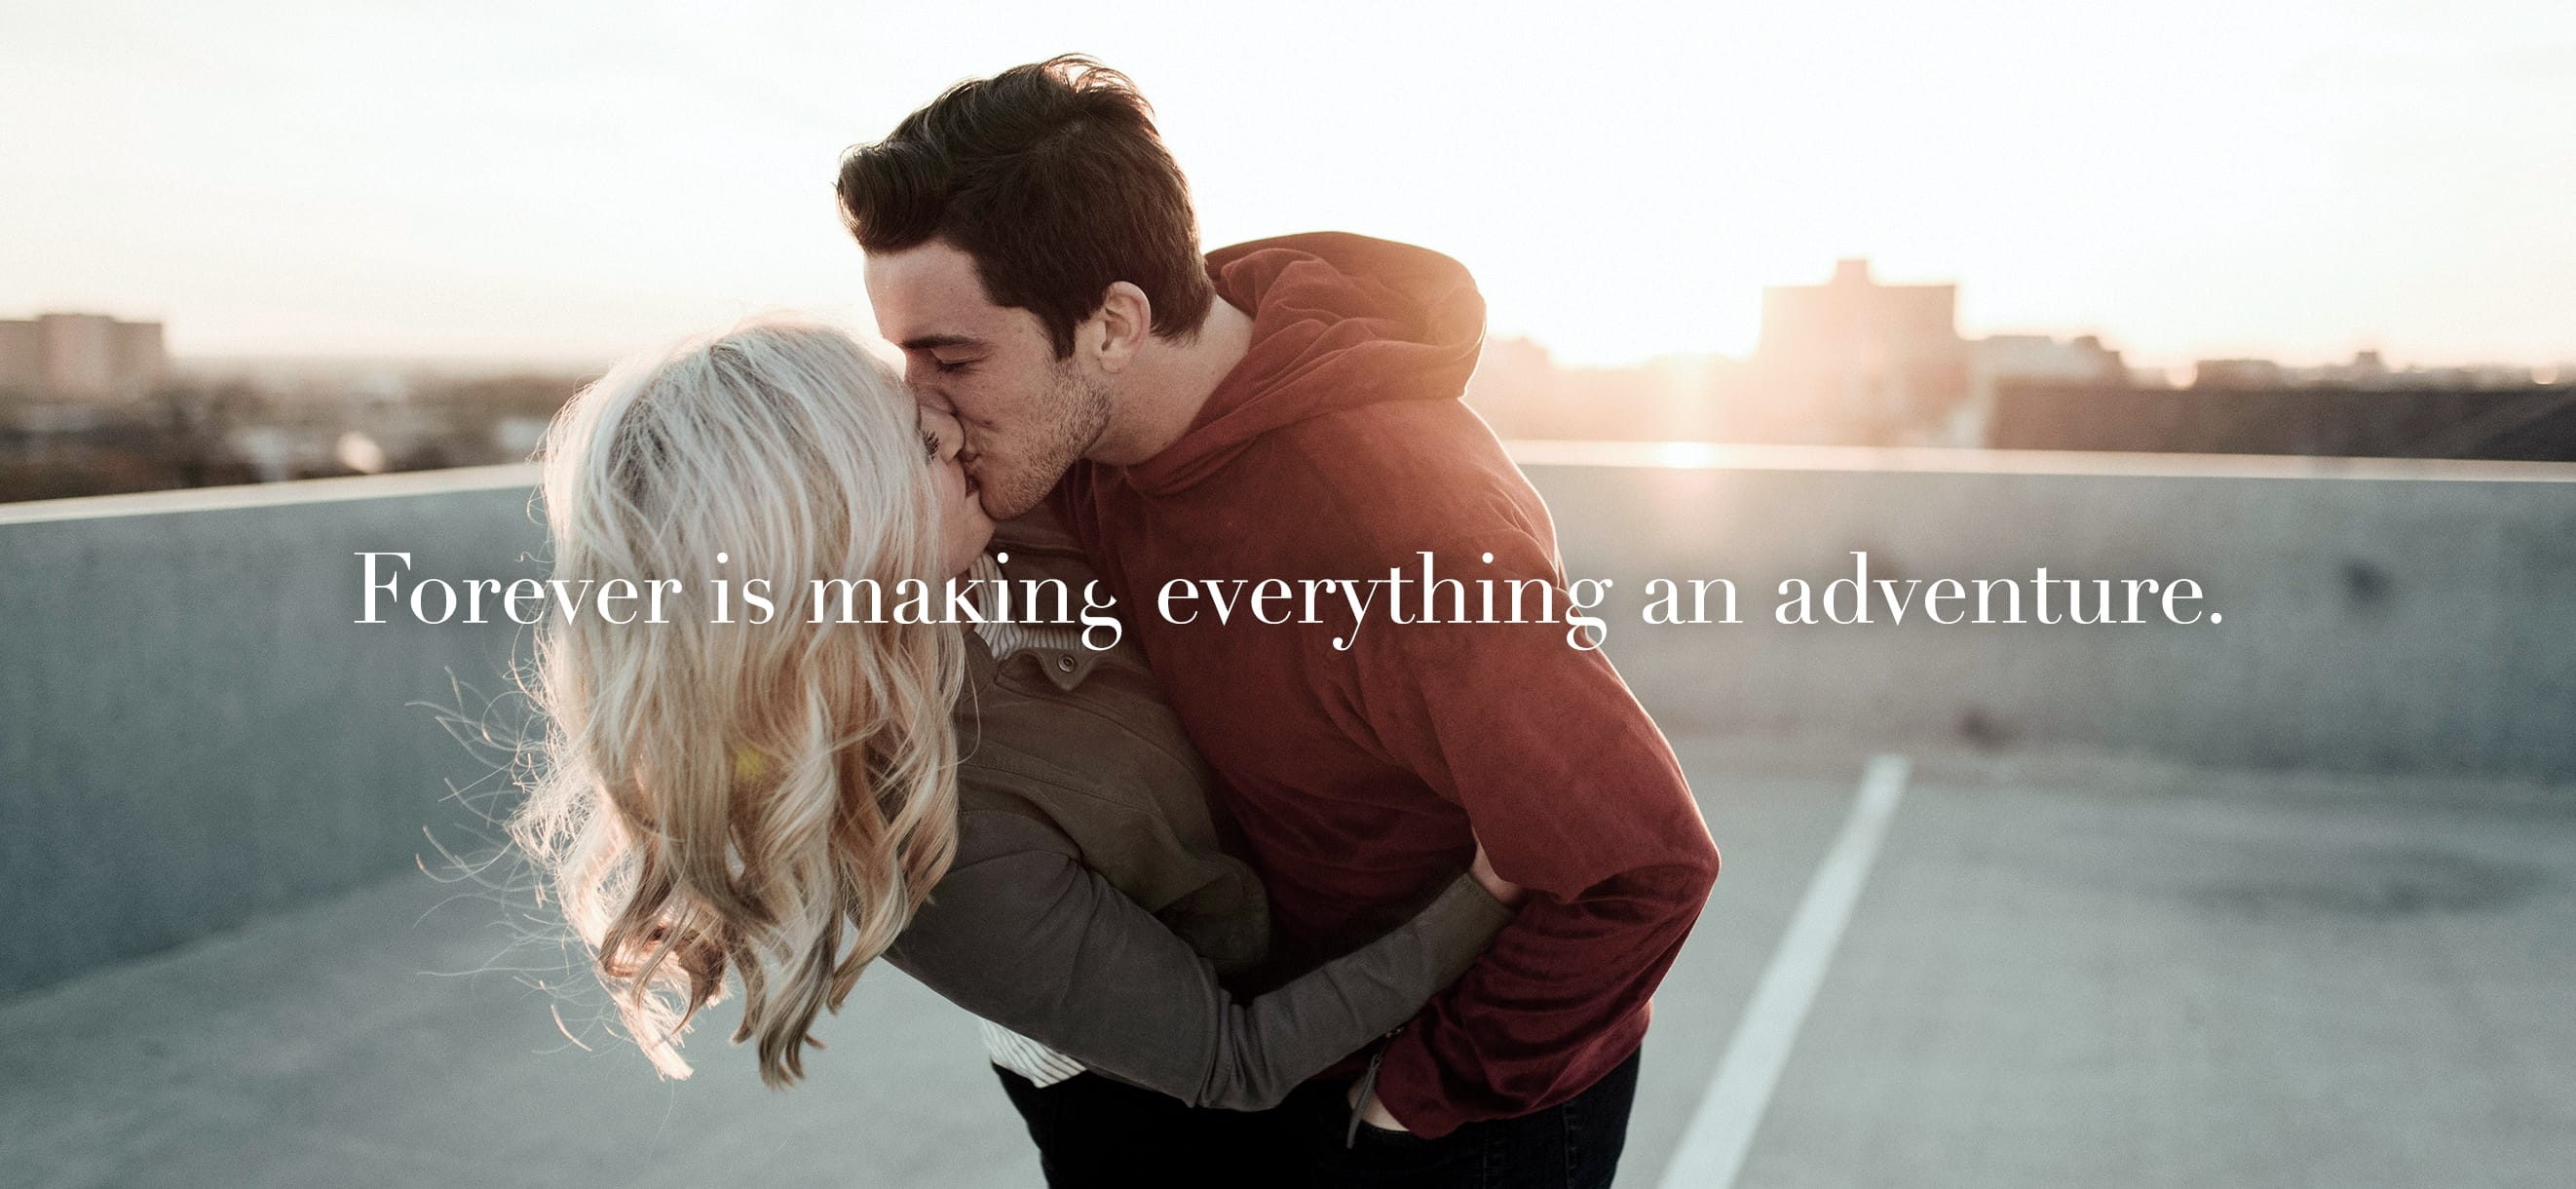 Forever is making everything an adventure.